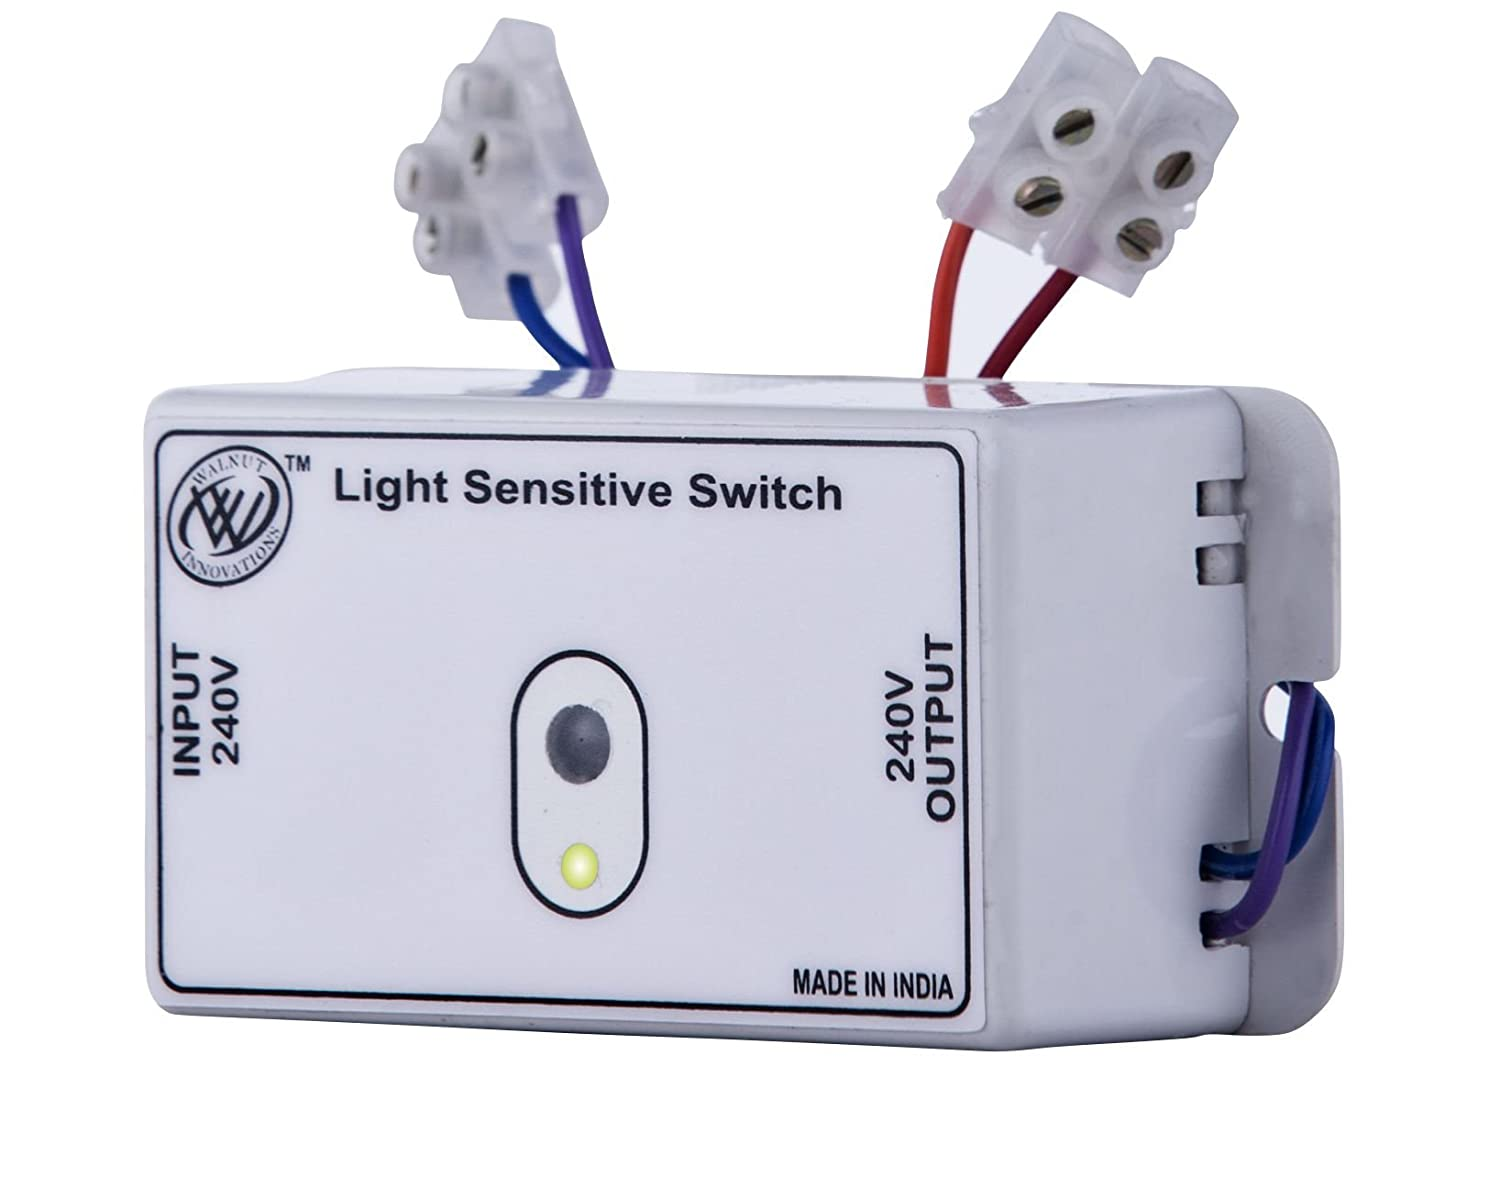 Walnut Innovations Plastic Day Night Automatic Light Sensor Switch Daylight Wiring Diagram Also With Circuit Siemens Grey Home Improvement